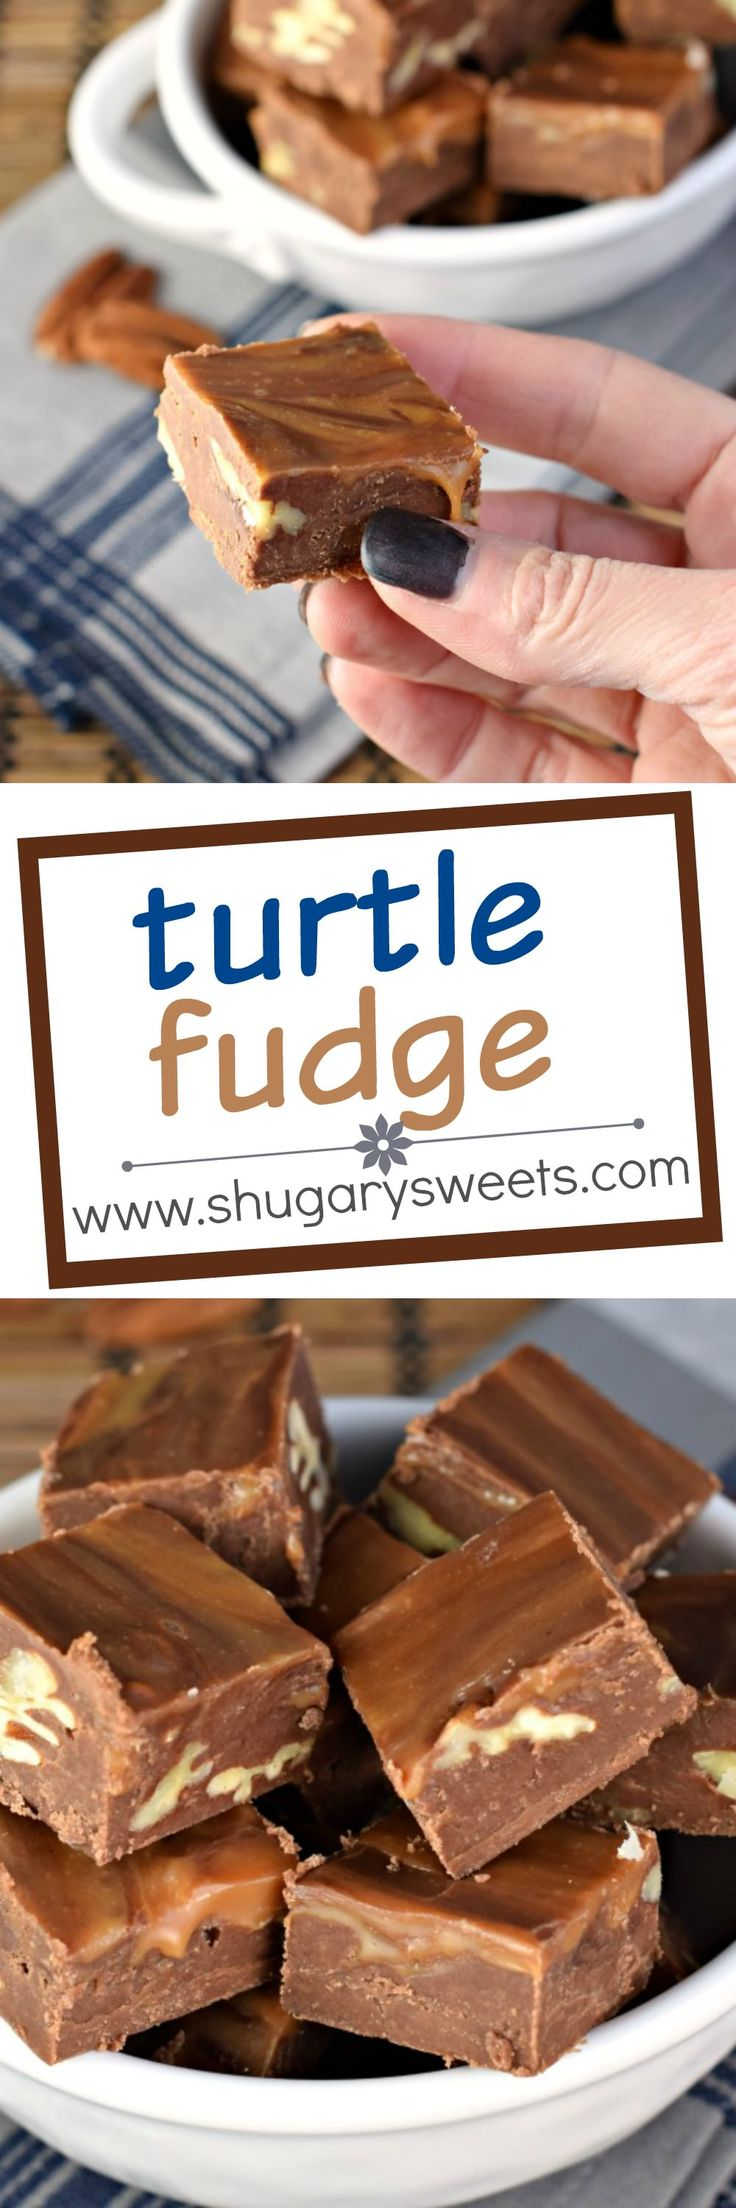 ladies handbags uk Turtle Fudge is made with a rich  chocolate base and swirled with caramel and packed with crunchy pecans